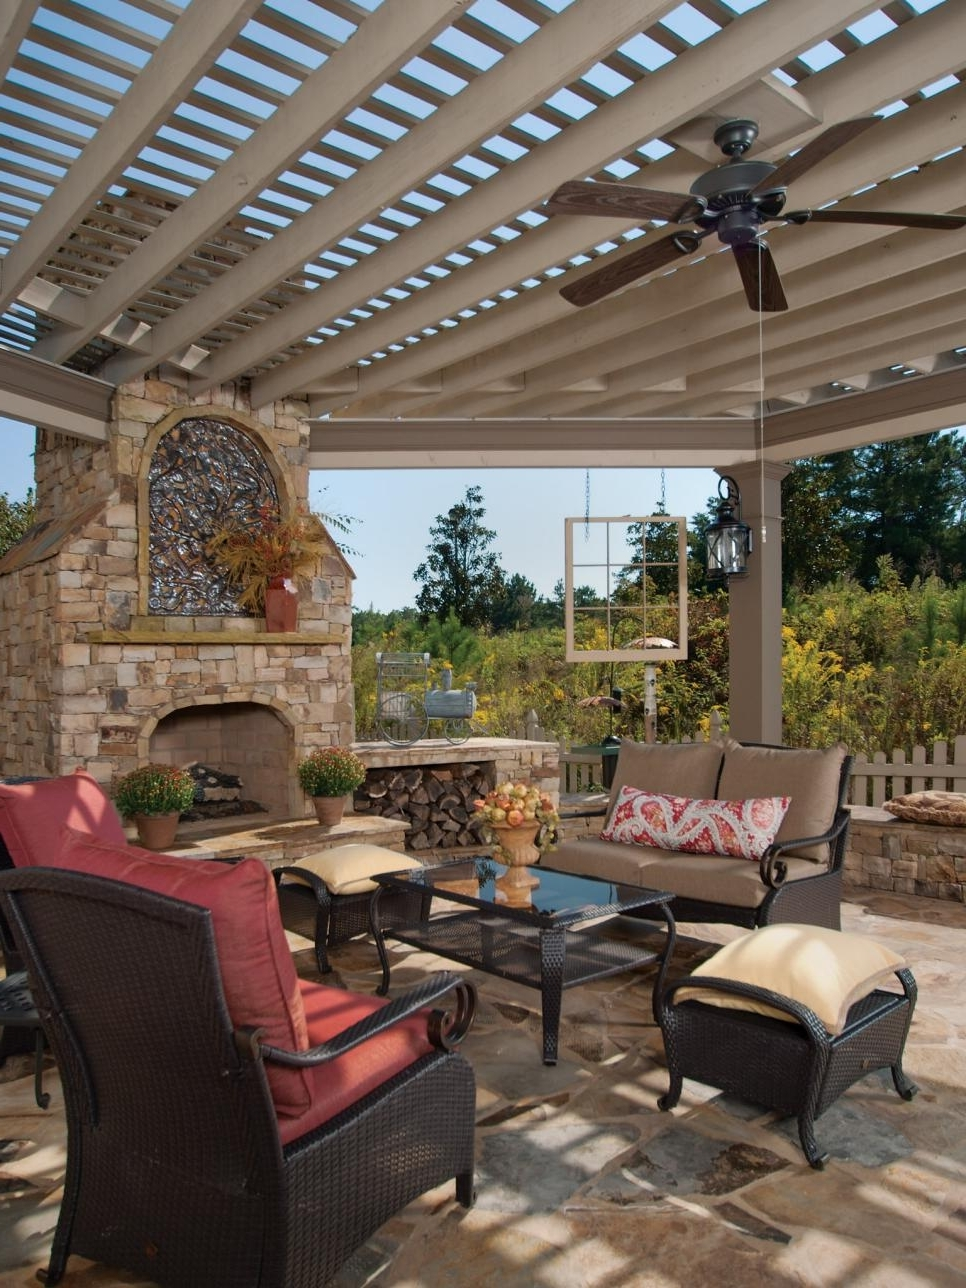 Fashionable Outdoor Ceiling Fans For Decks Intended For Pictures: Outdoor Fans For Decks, – Diy Home Design & Furniture (Gallery 10 of 20)